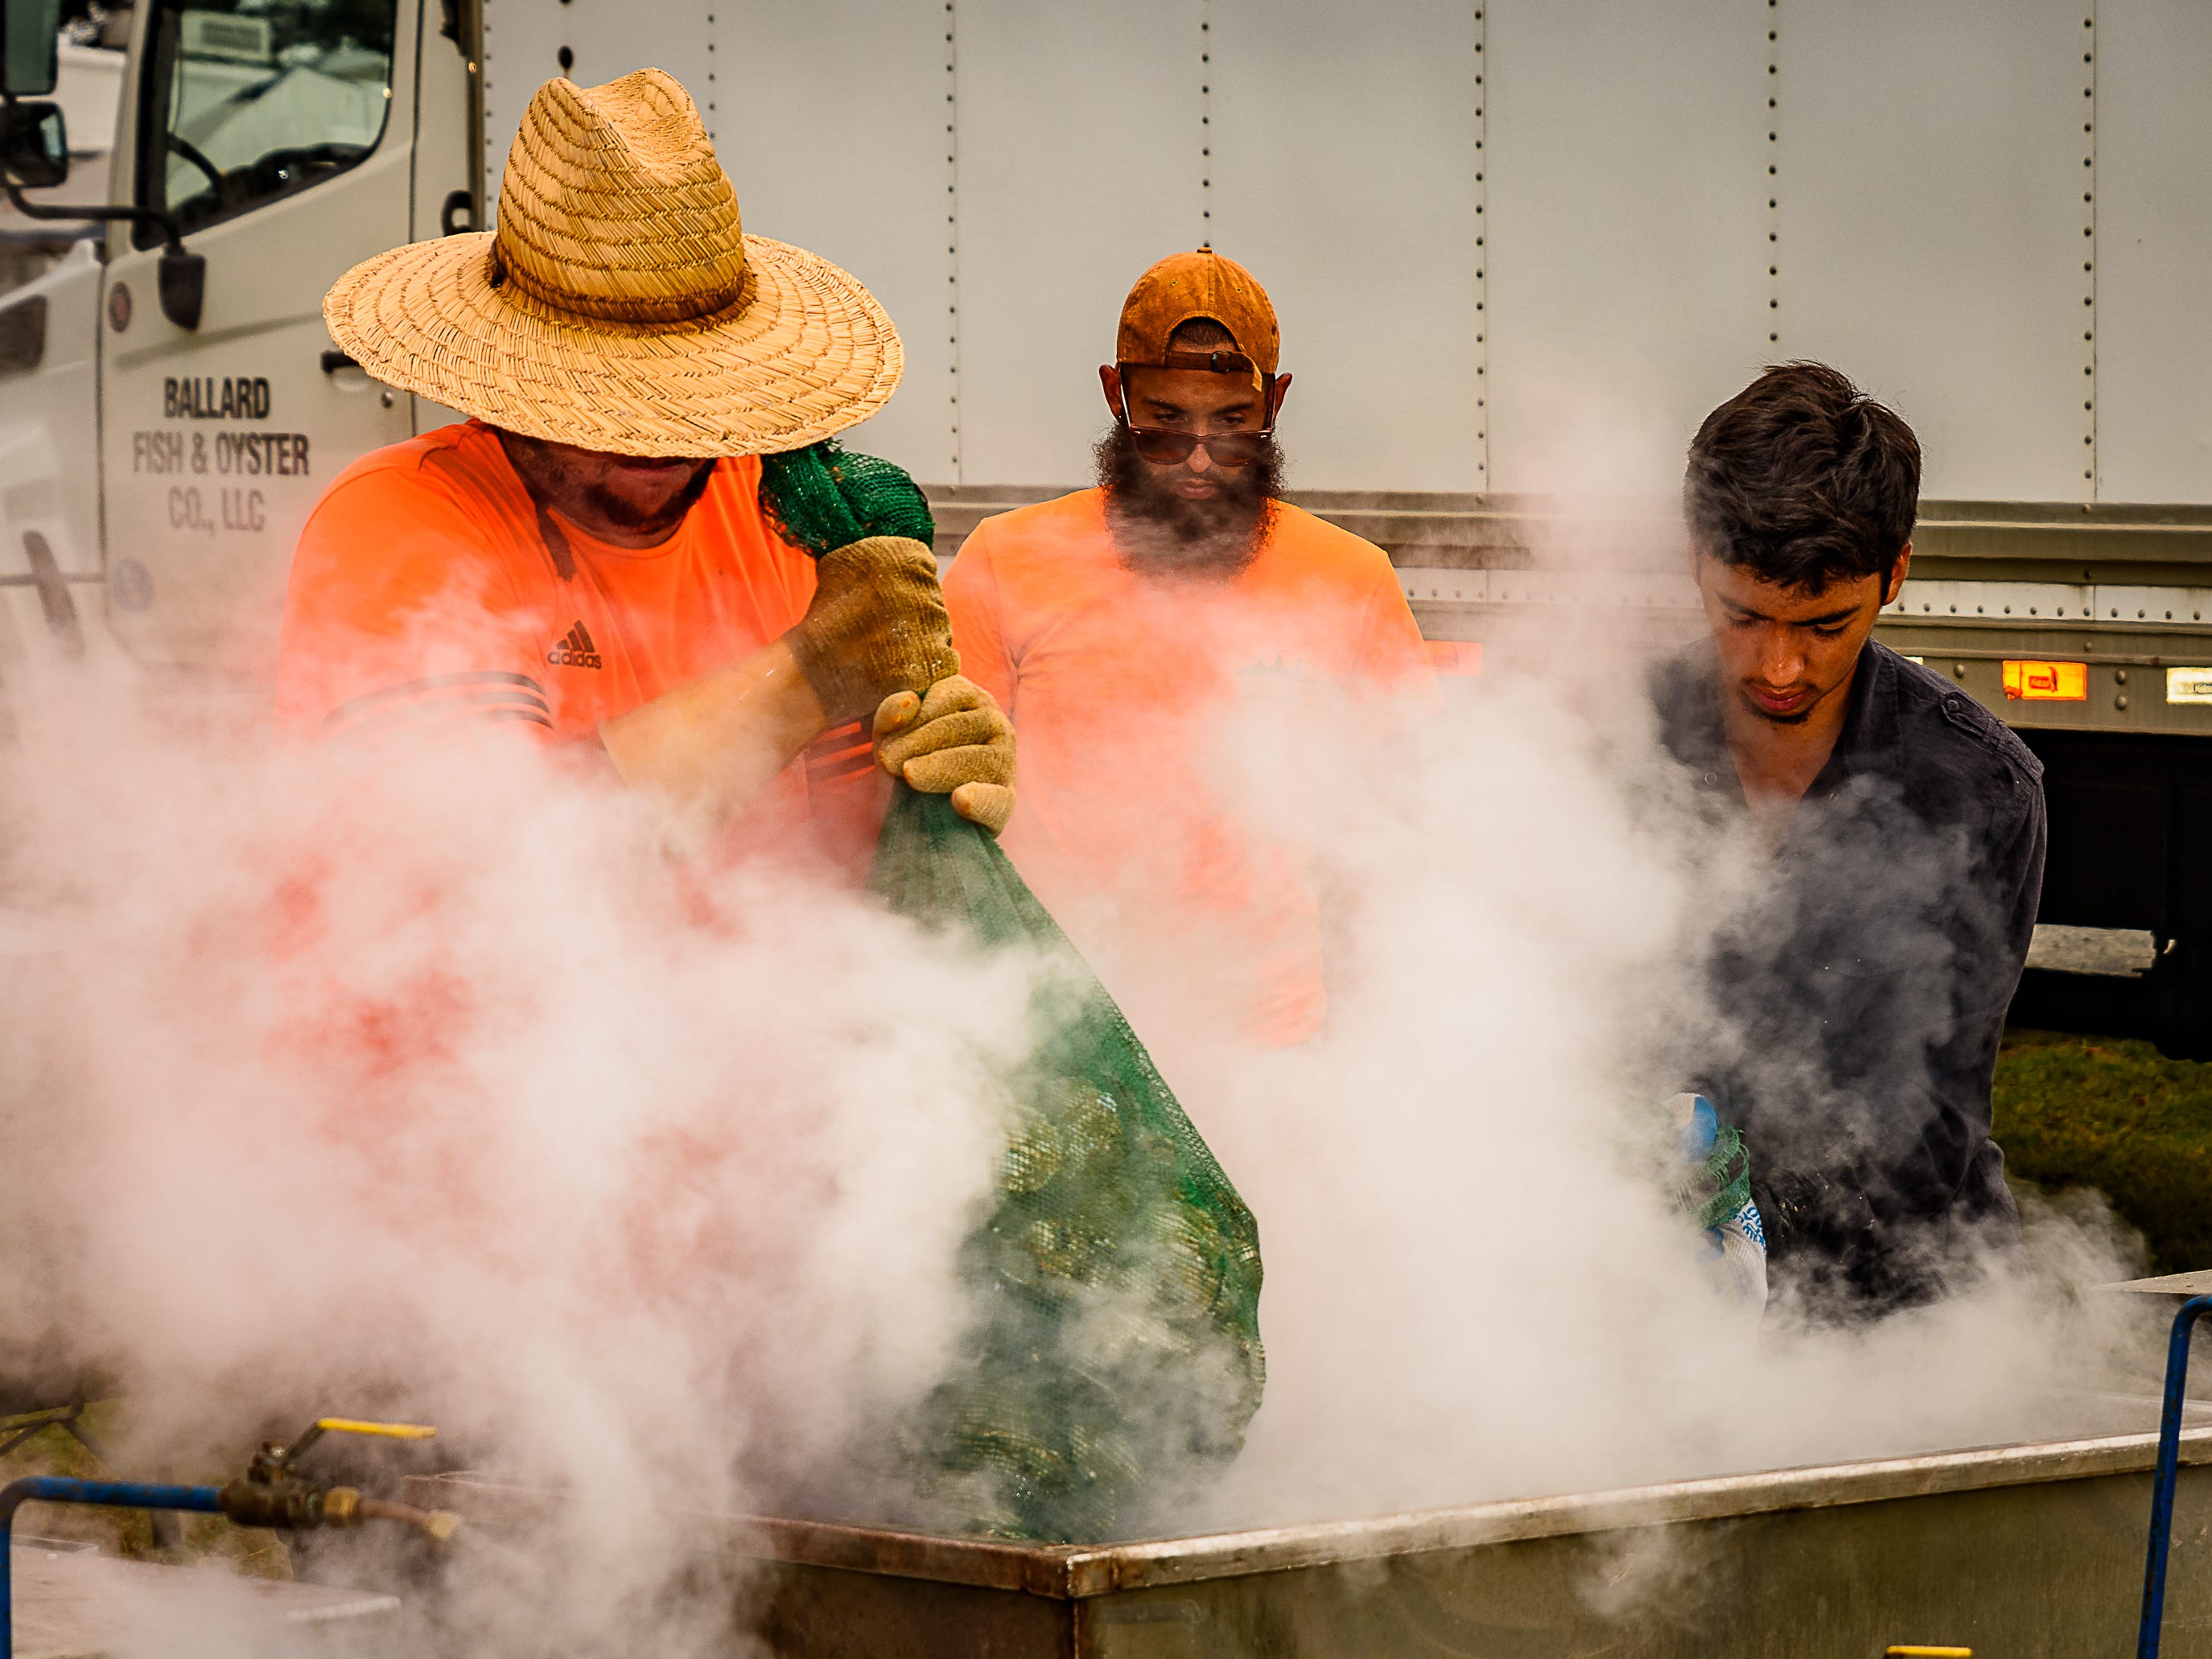 Clouds of steam escape the vats being used to steam oysters at the festival.